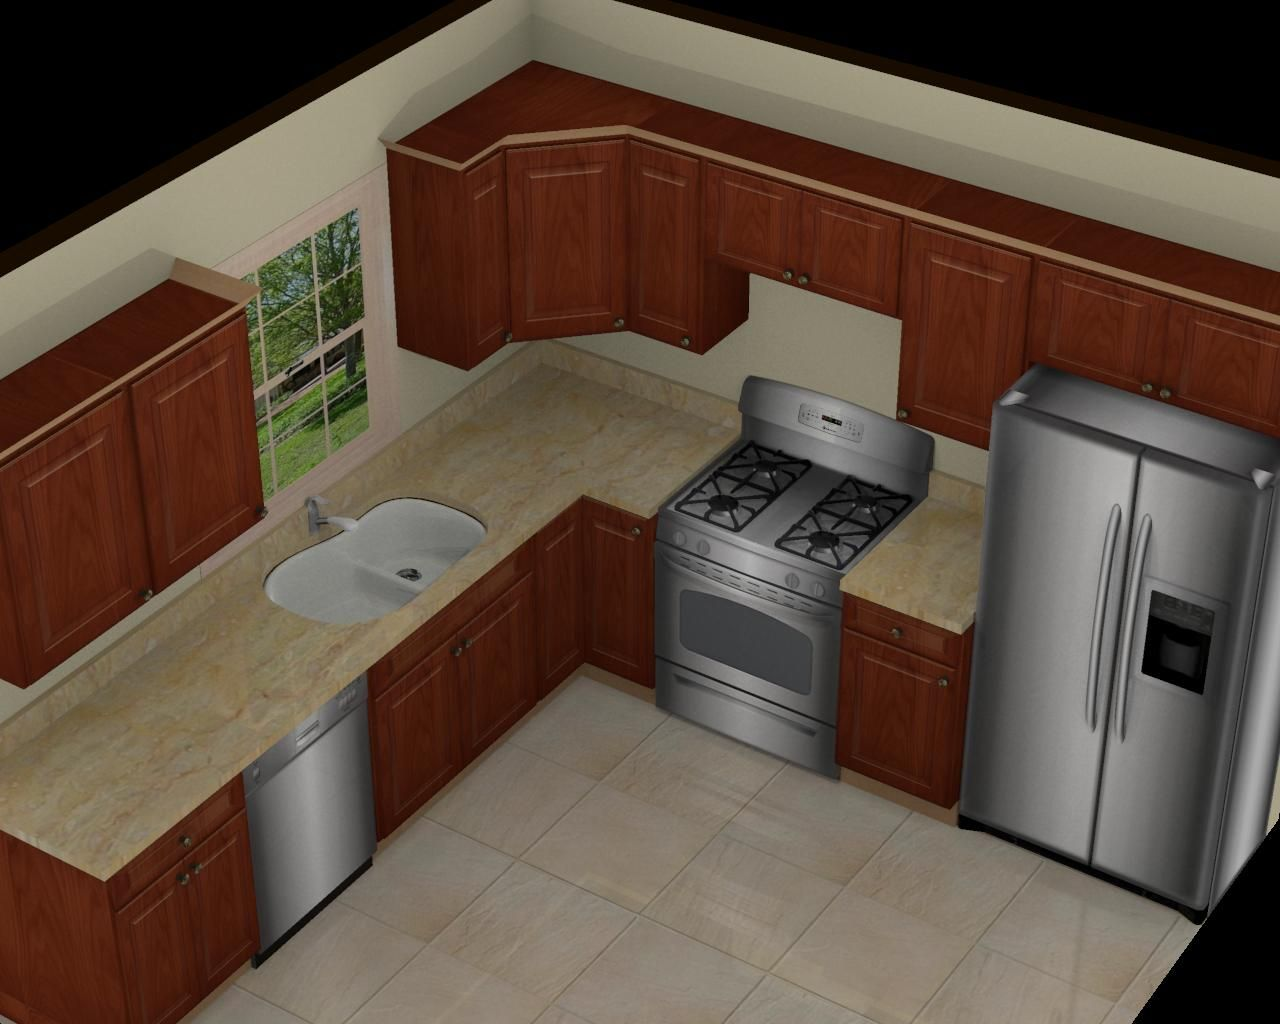 10x10 kitchen cabinets - There Are Many Ideas 10 10 Kitchen Design That You Can Do To Remodel 10